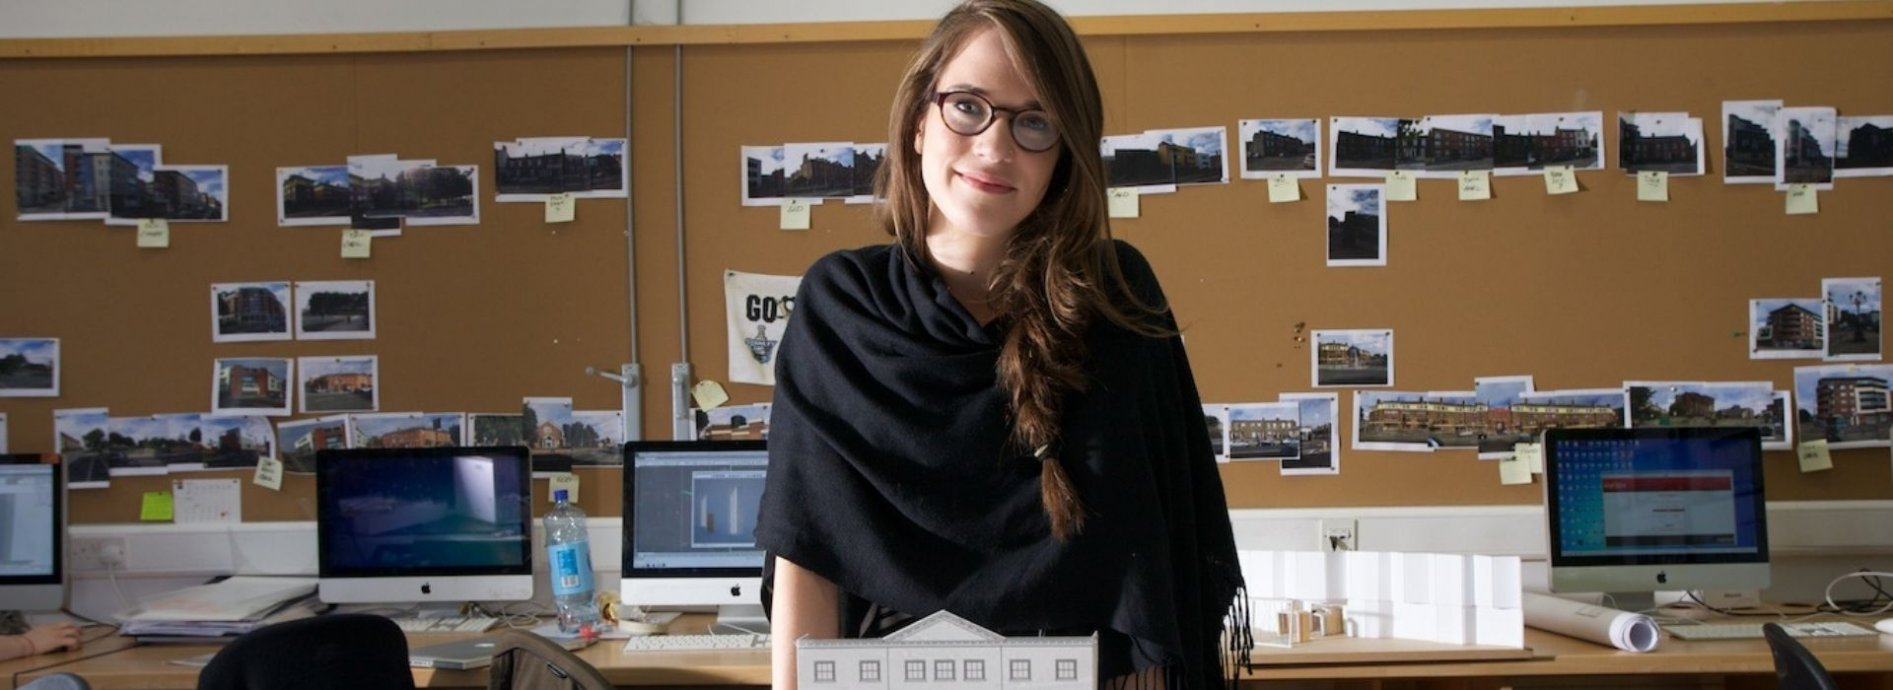 A female architecture student stands smiling behind a model of her work